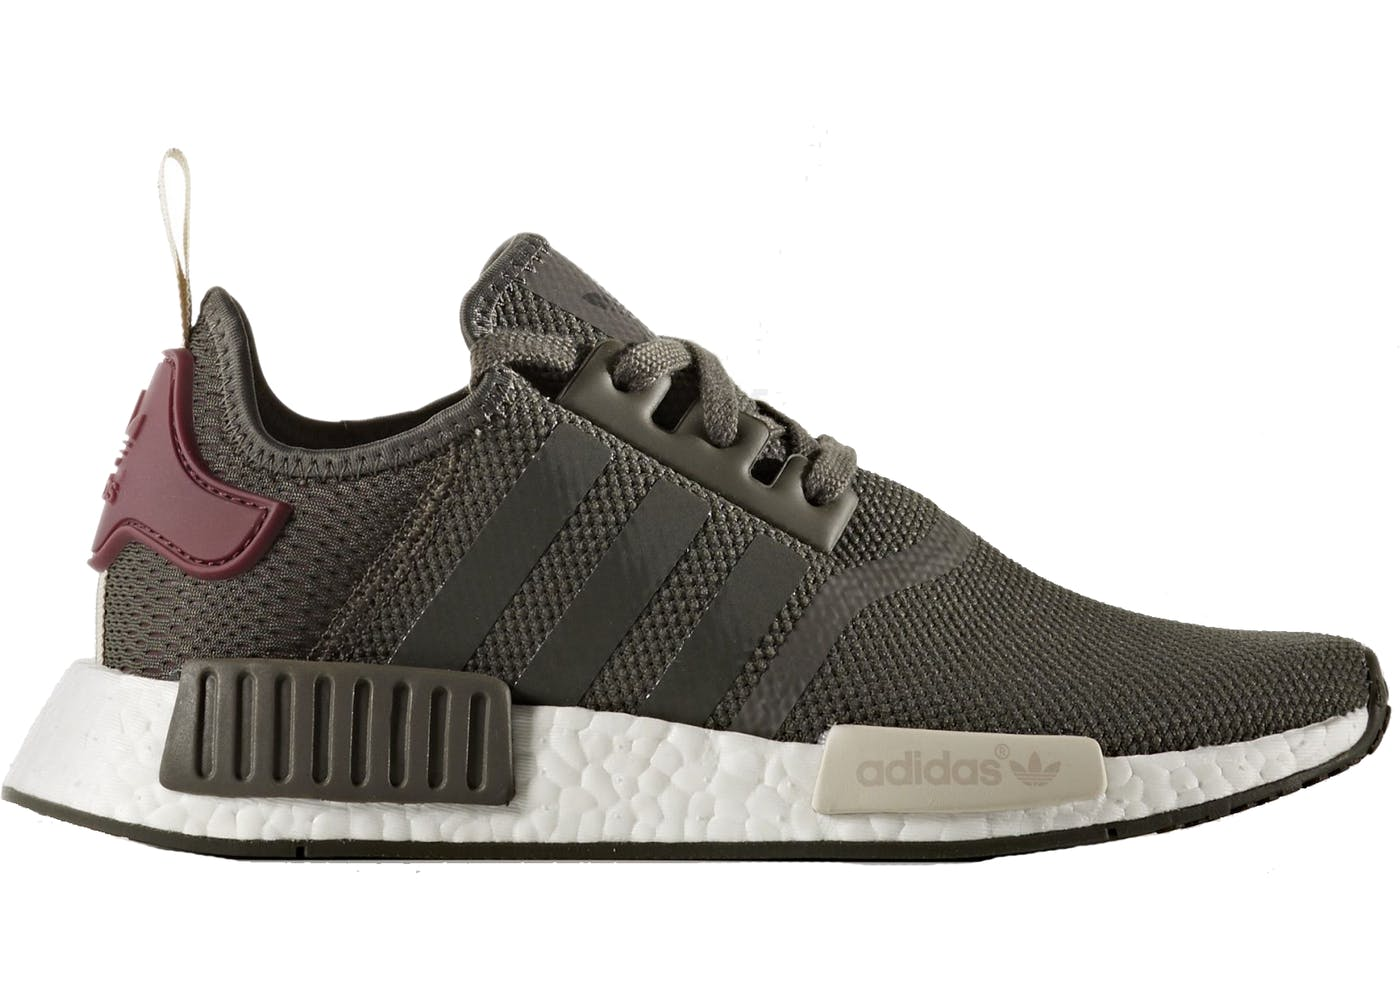 Buy nmd kids red cheap Rimslow